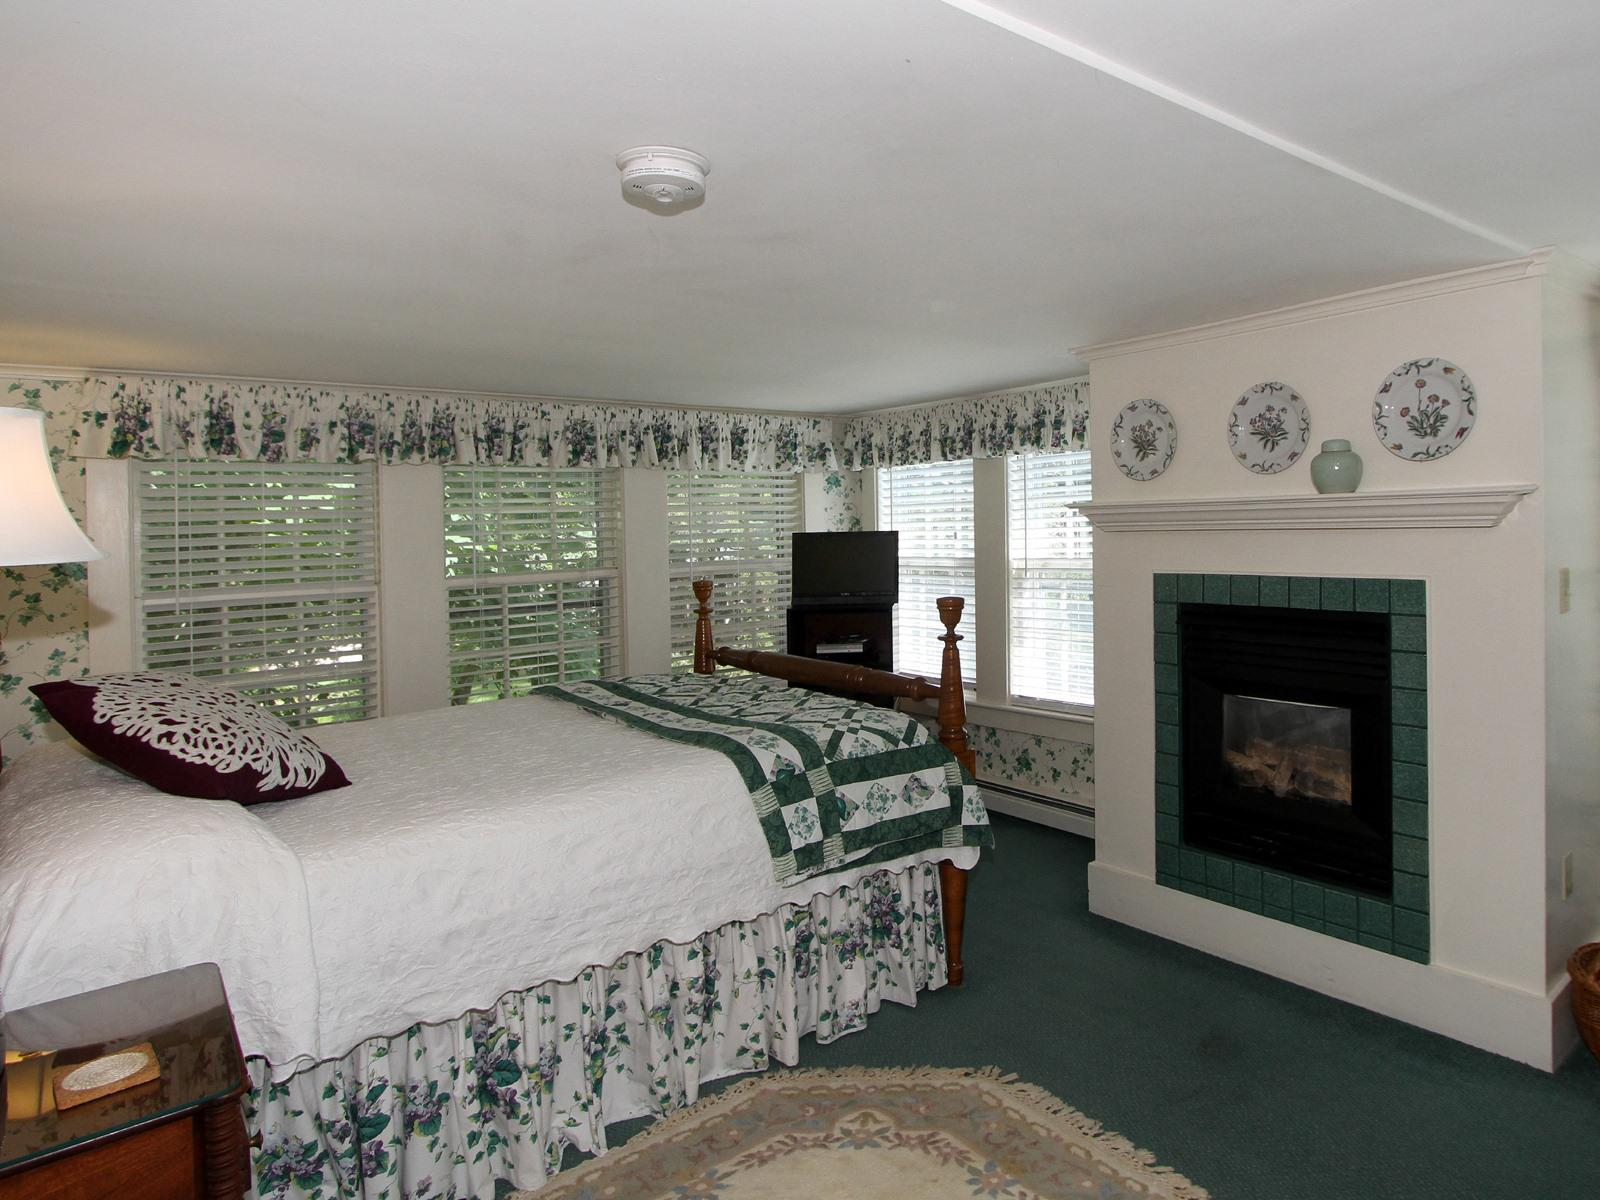 Queen-Ensuite-Luxury-Garden View-Main Inn Room 4